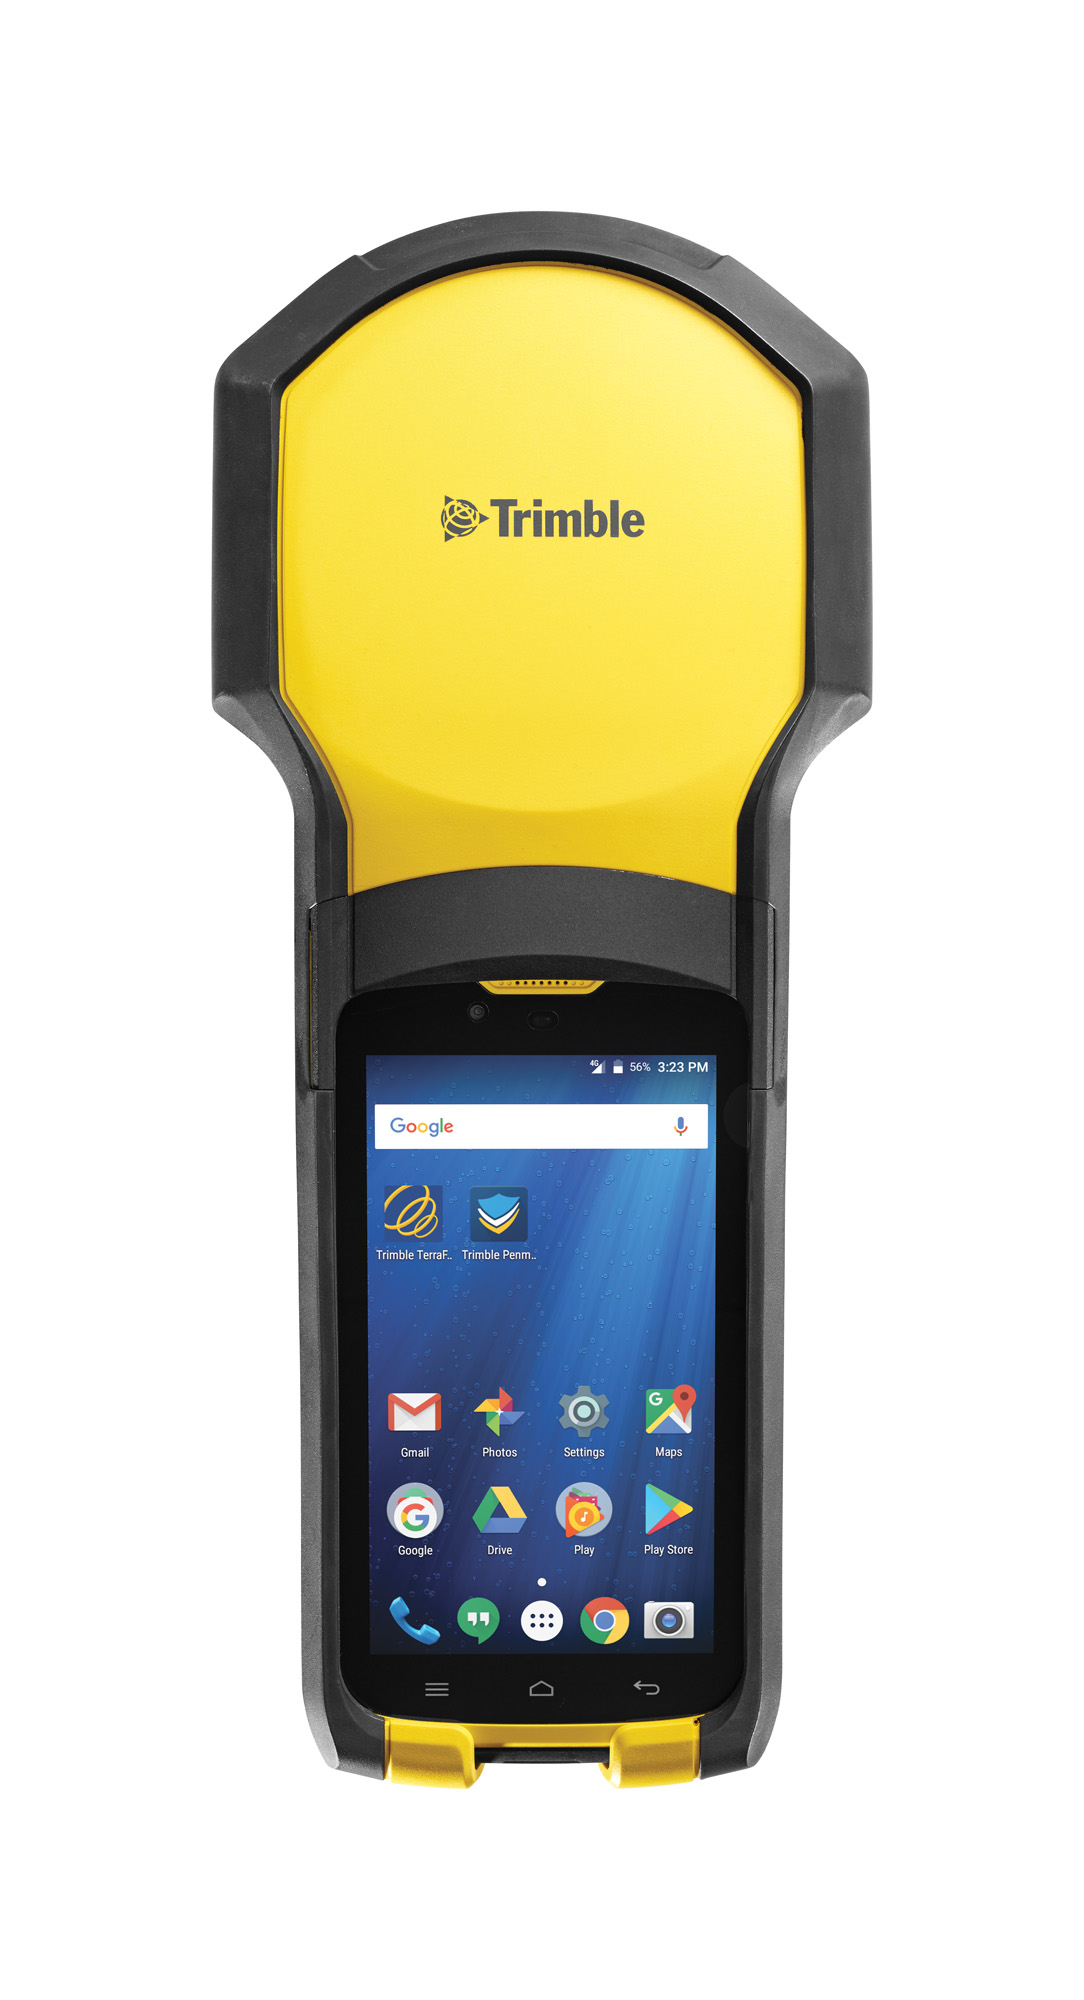 Trimble_TDC150_front_0093_05 (1)